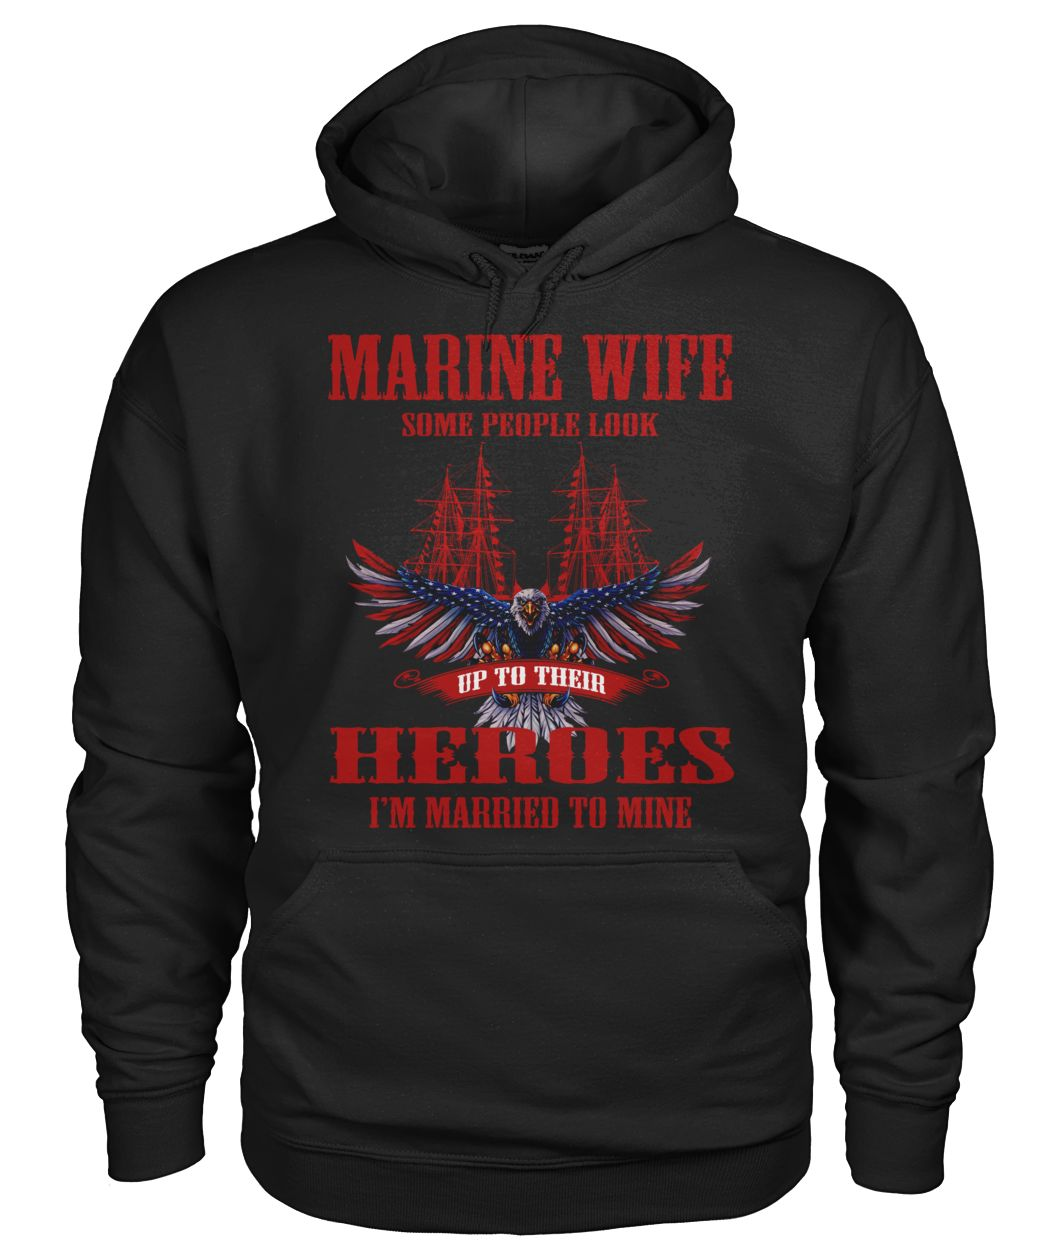 marine wife some people look up to their heroes i'm married to mine wp